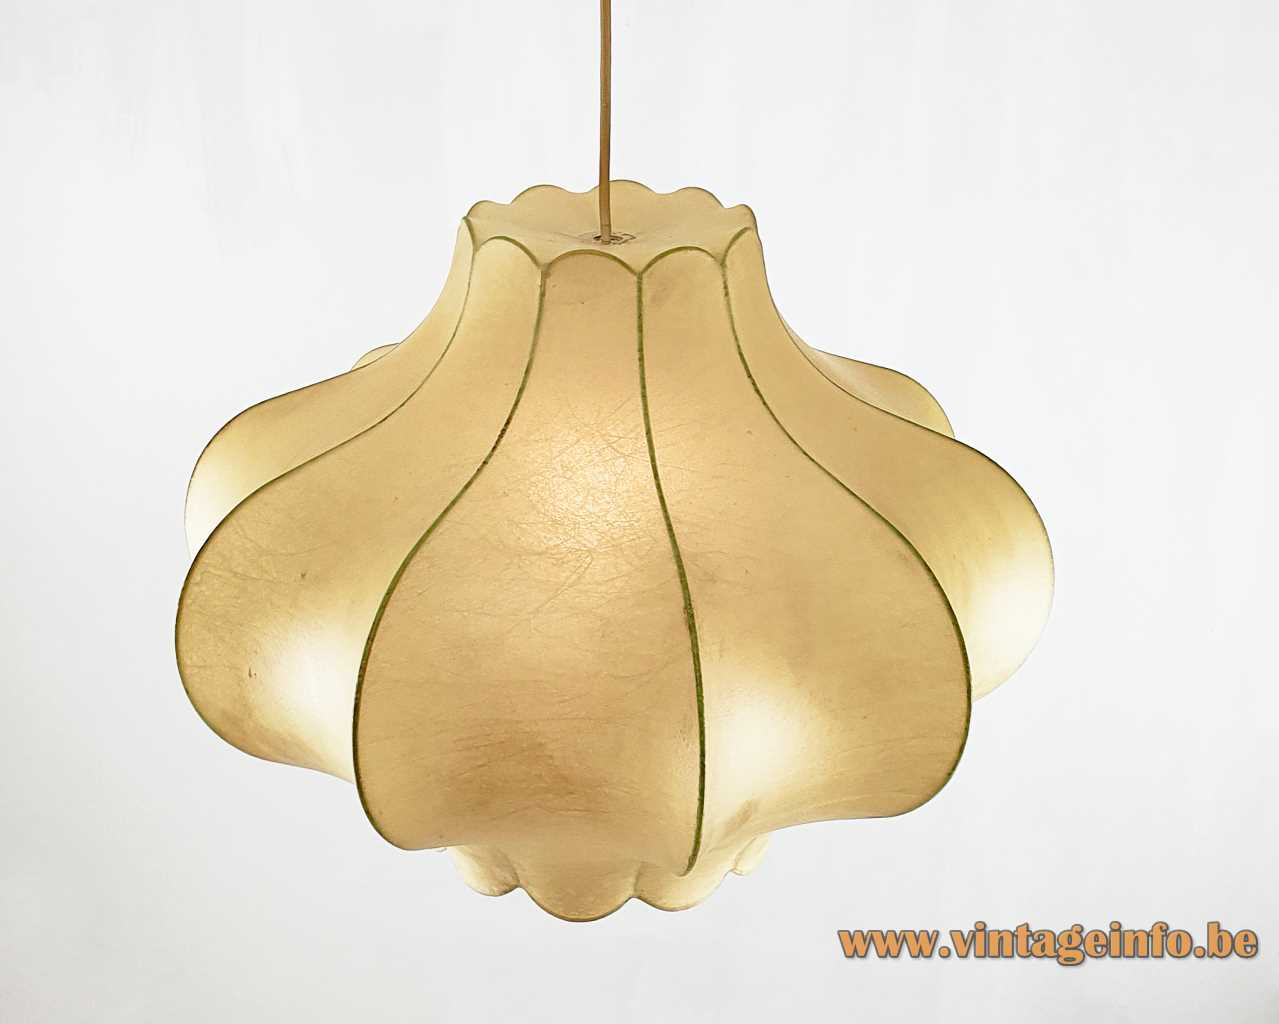 Goldkant Leuchten Cocoon onion pendant lamp sprayed plastic wire frame pig's bladder 1960s 1970s Germany